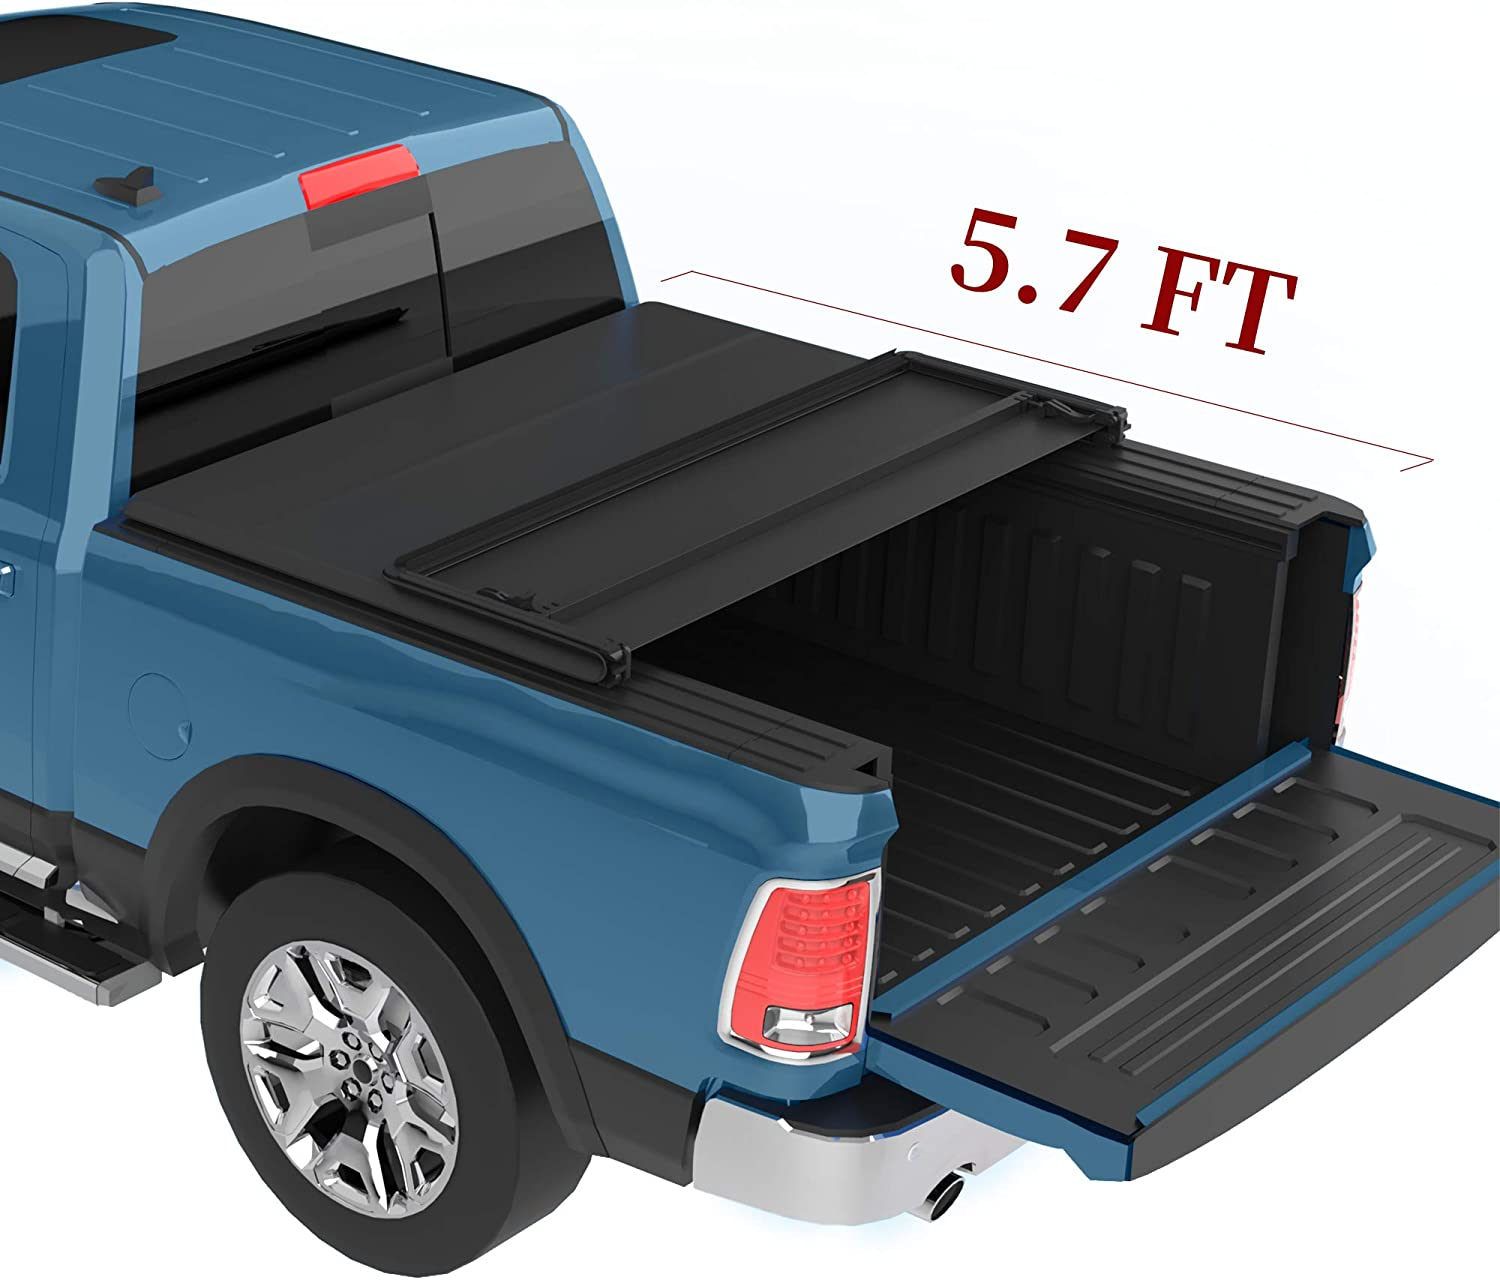 Amazon Com Yitamotor Soft Tri Fold Truck Bed Tonneau Cover Compatible With 2019 2020 Dodge Ram 1500 5 7 Ft Automotive